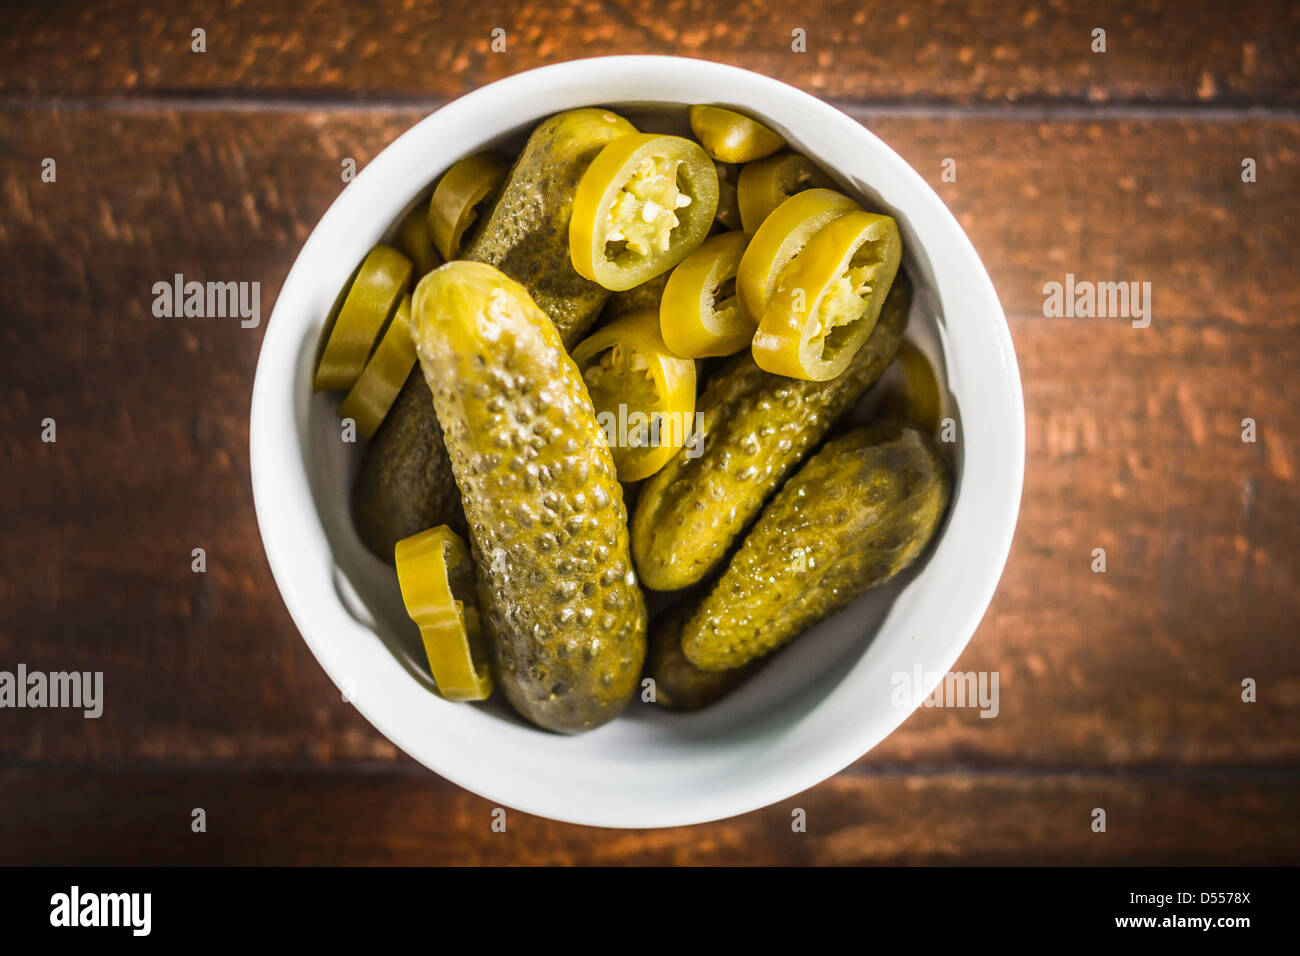 Bol de pickles et de tranches de piment Photo Stock